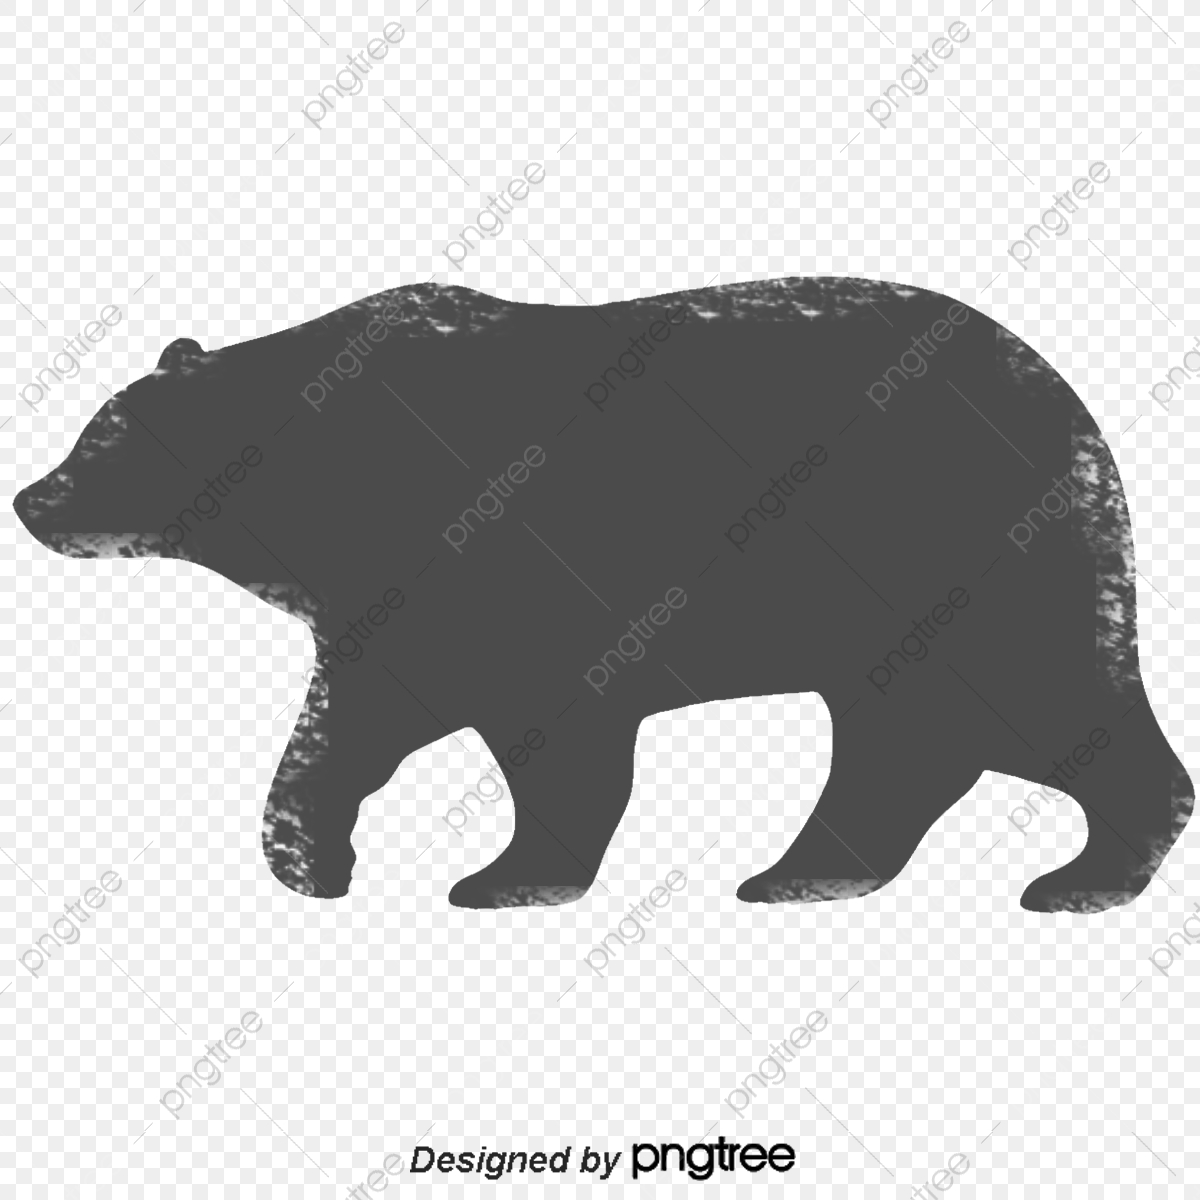 Black Bear Vector, Black Vector, Bear Vector, Stick Figure PNG and.